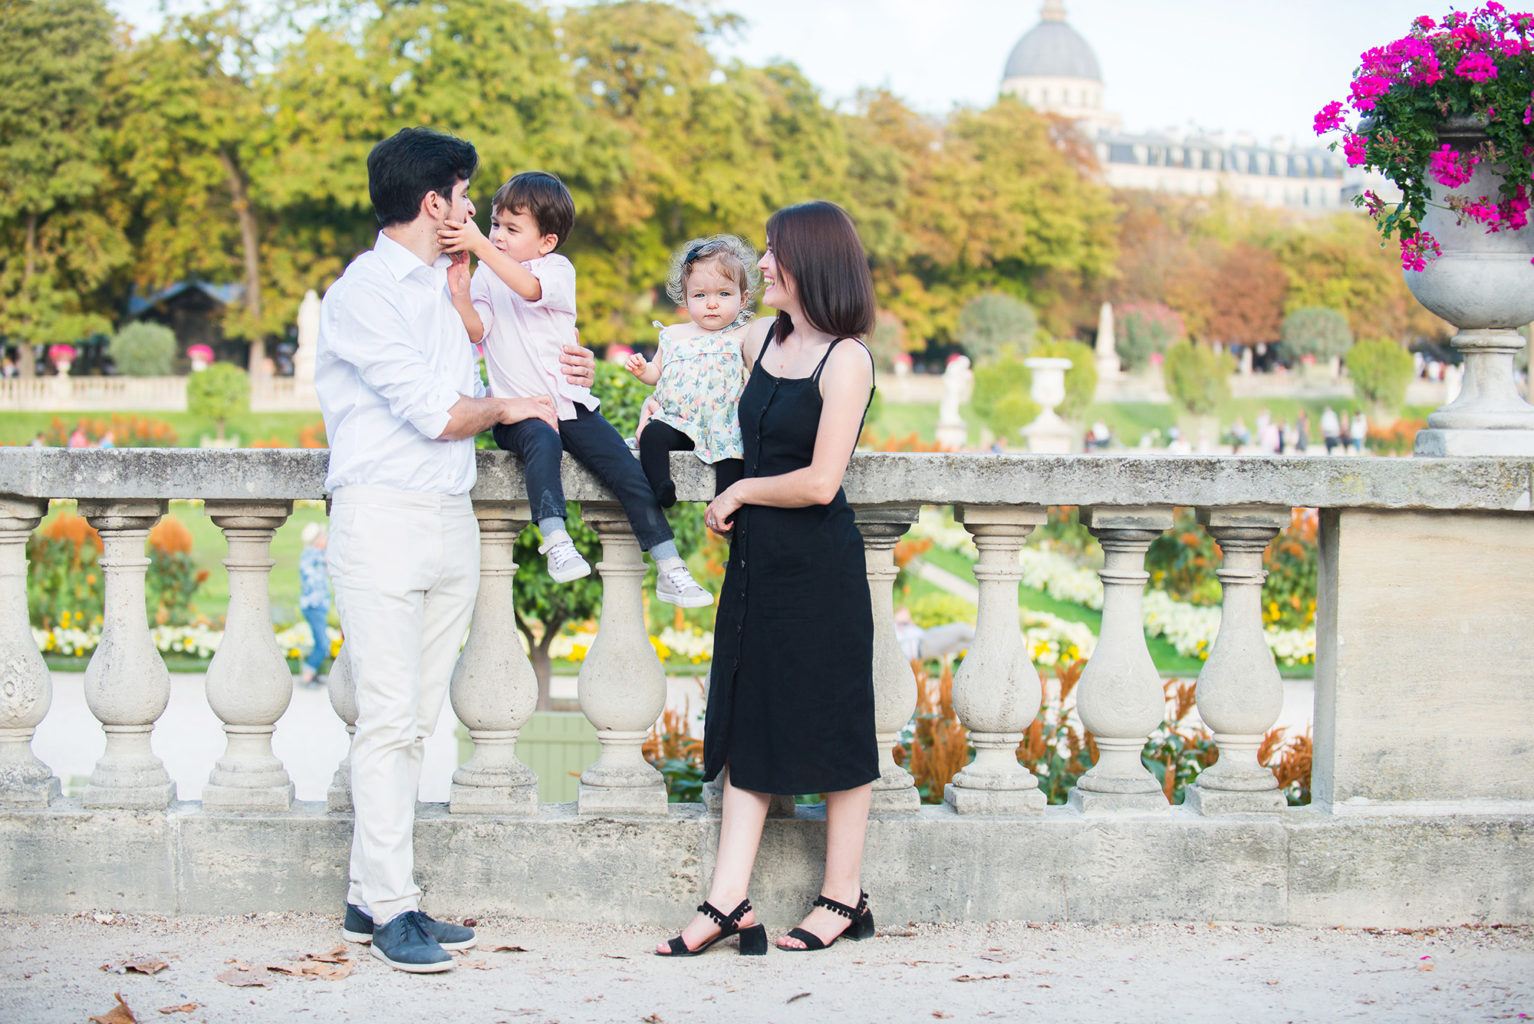 Belkas Family Photo Session in Paris' Jardin du Luxembourg